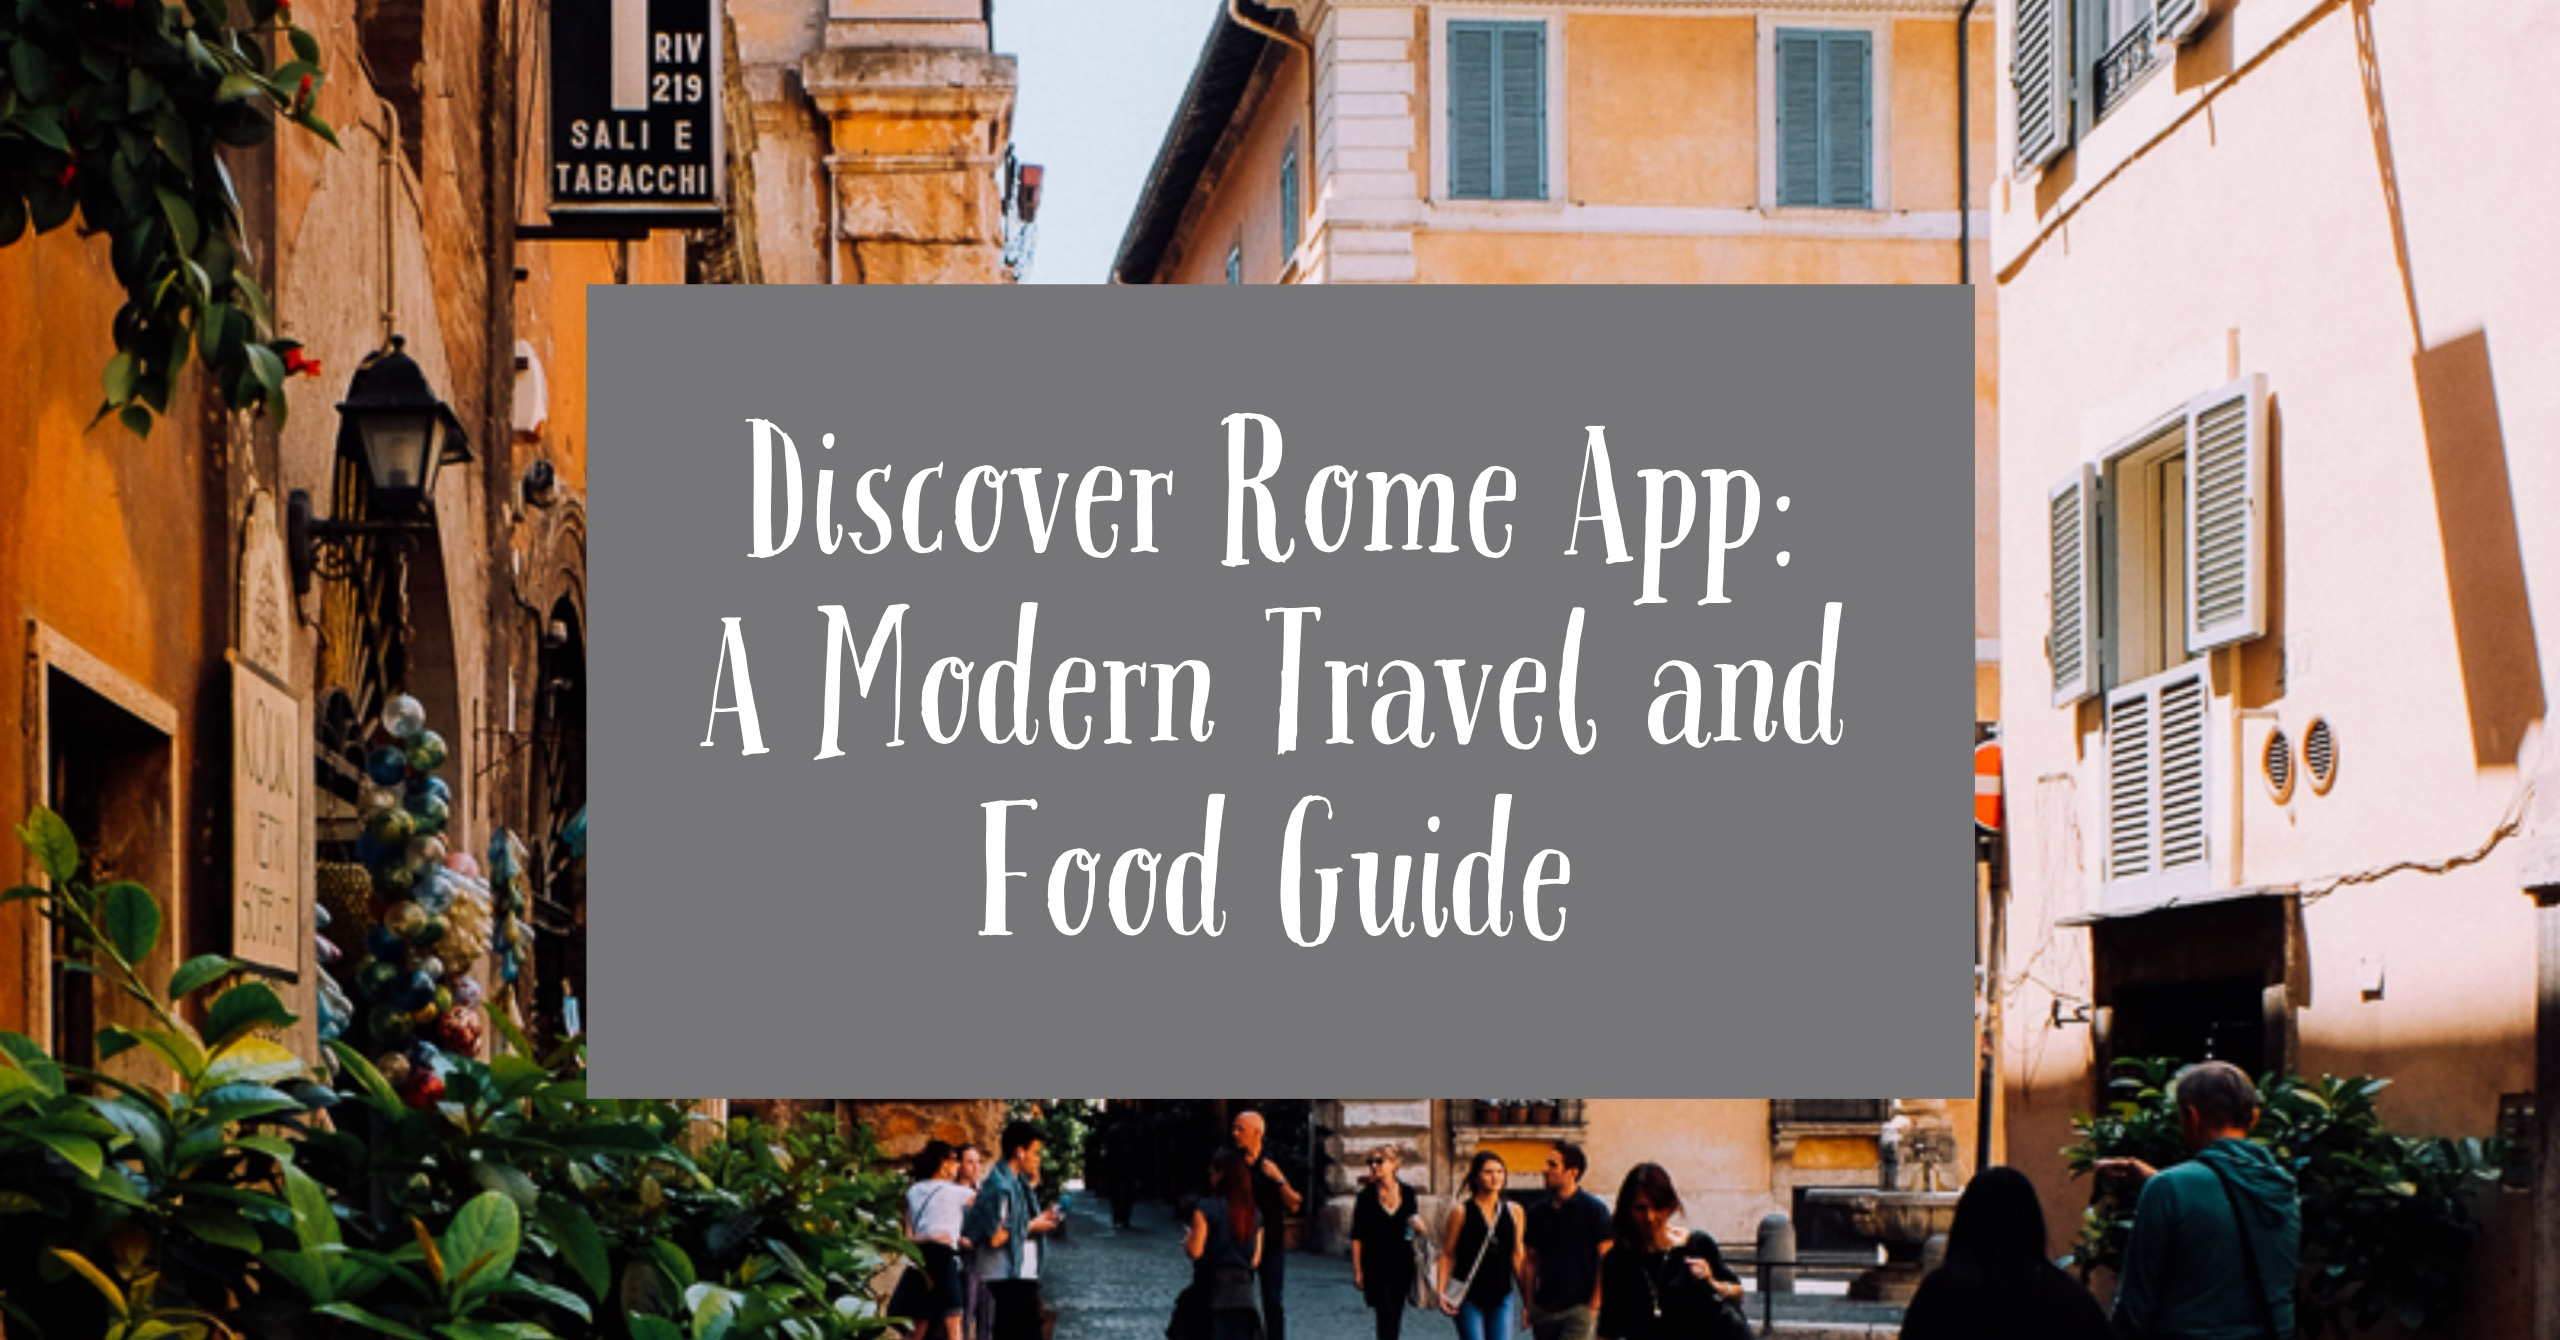 Voda.it/cucina Italiana Discover Rome New App Updates An American In Rome